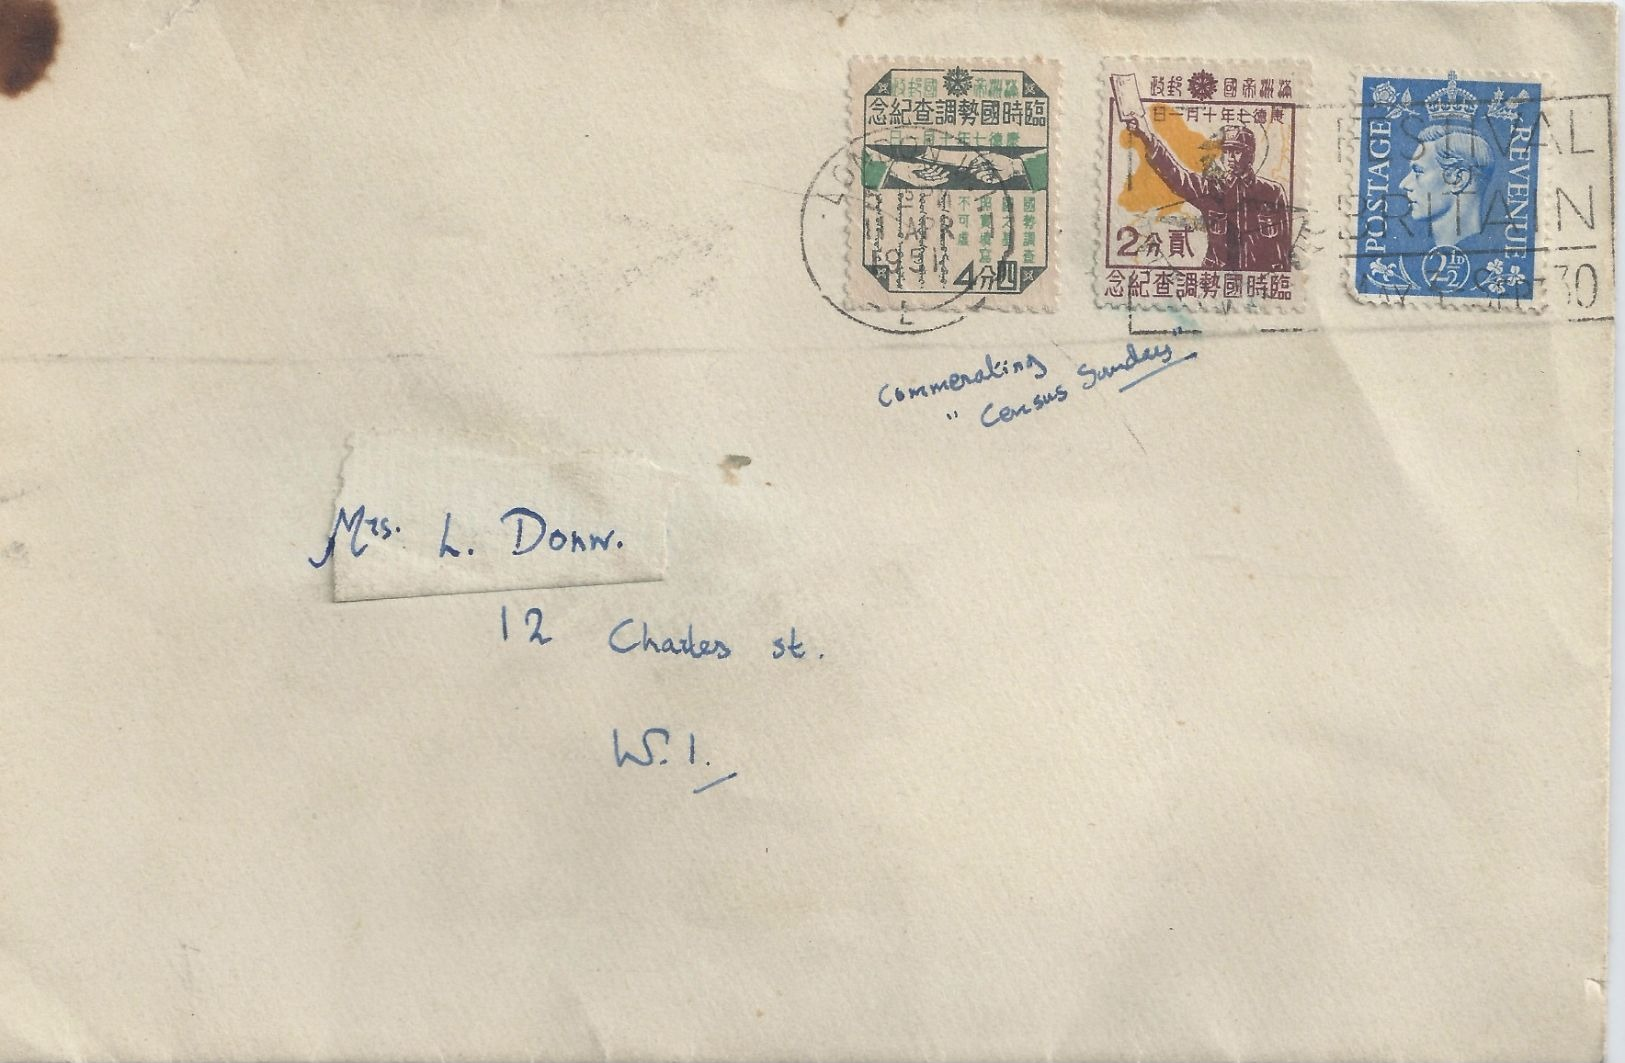 GB Unusual Cover Postmarked 1951 With Hand Written Censor And 2 Japanese Stamps - 1902-1951 (Kings)